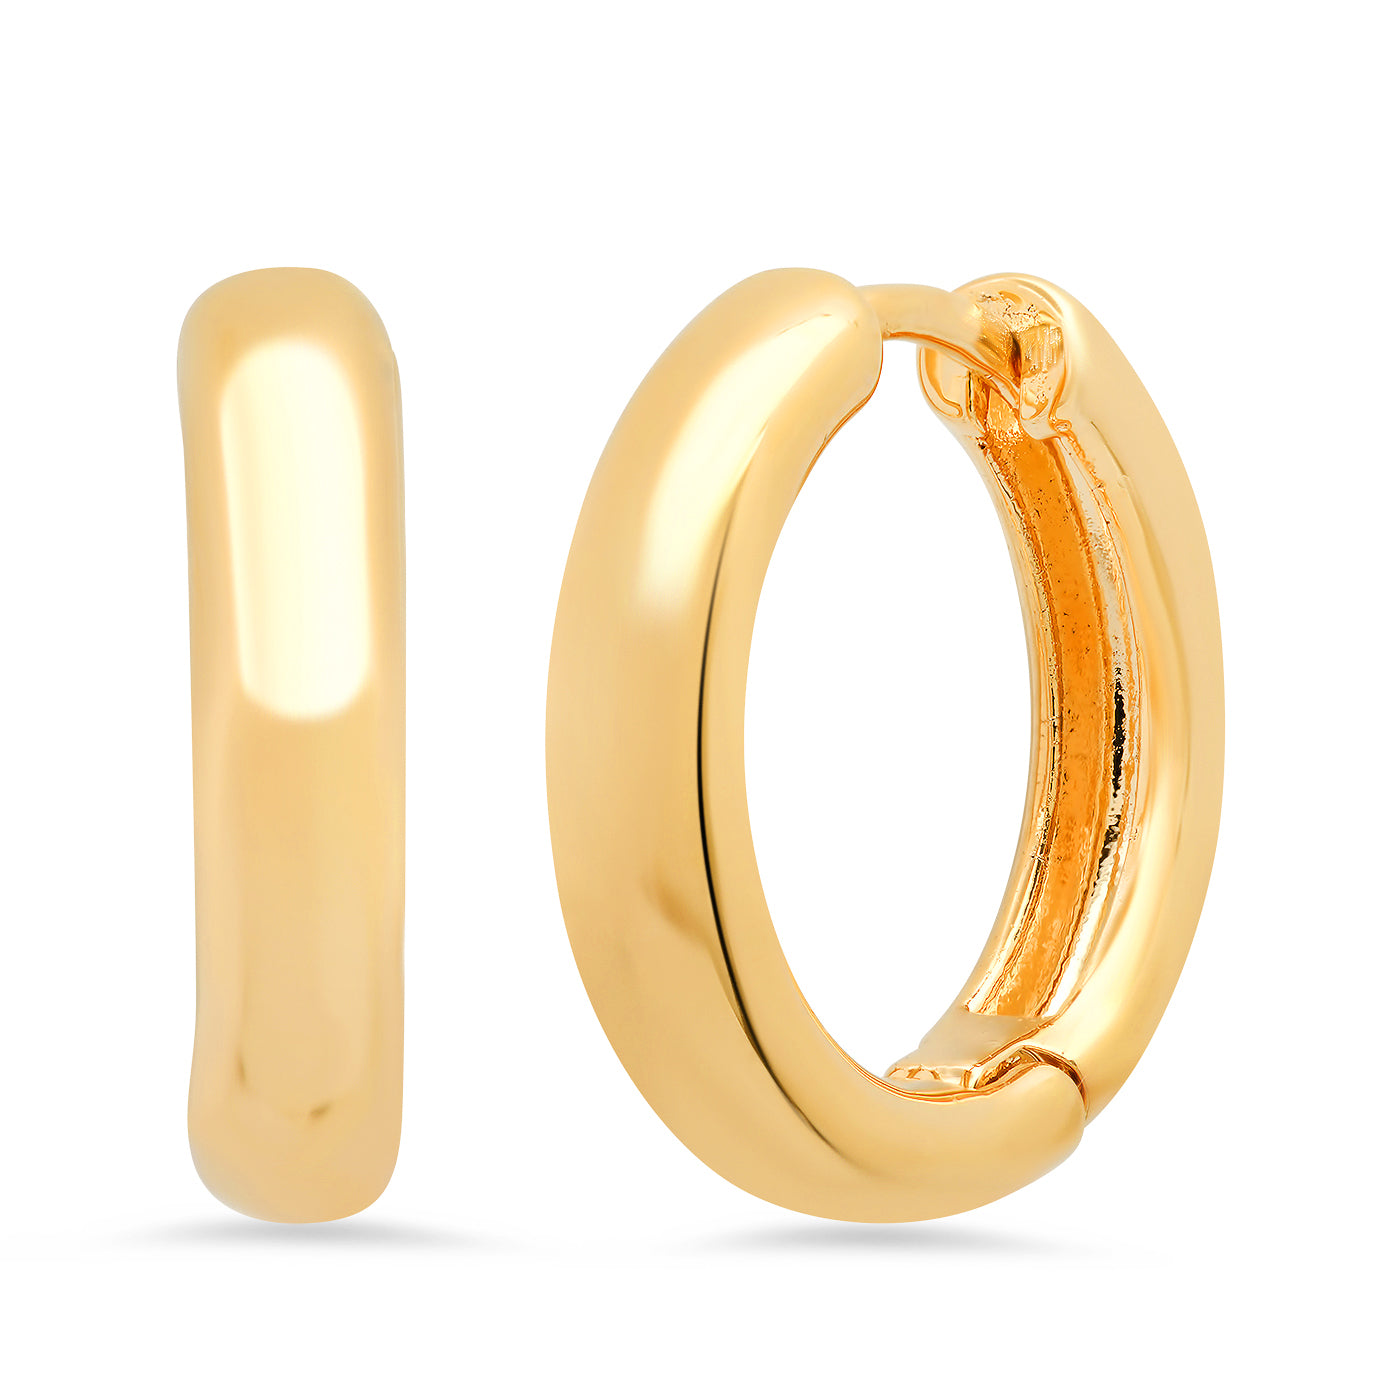 Thick 15mm Gold Huggie